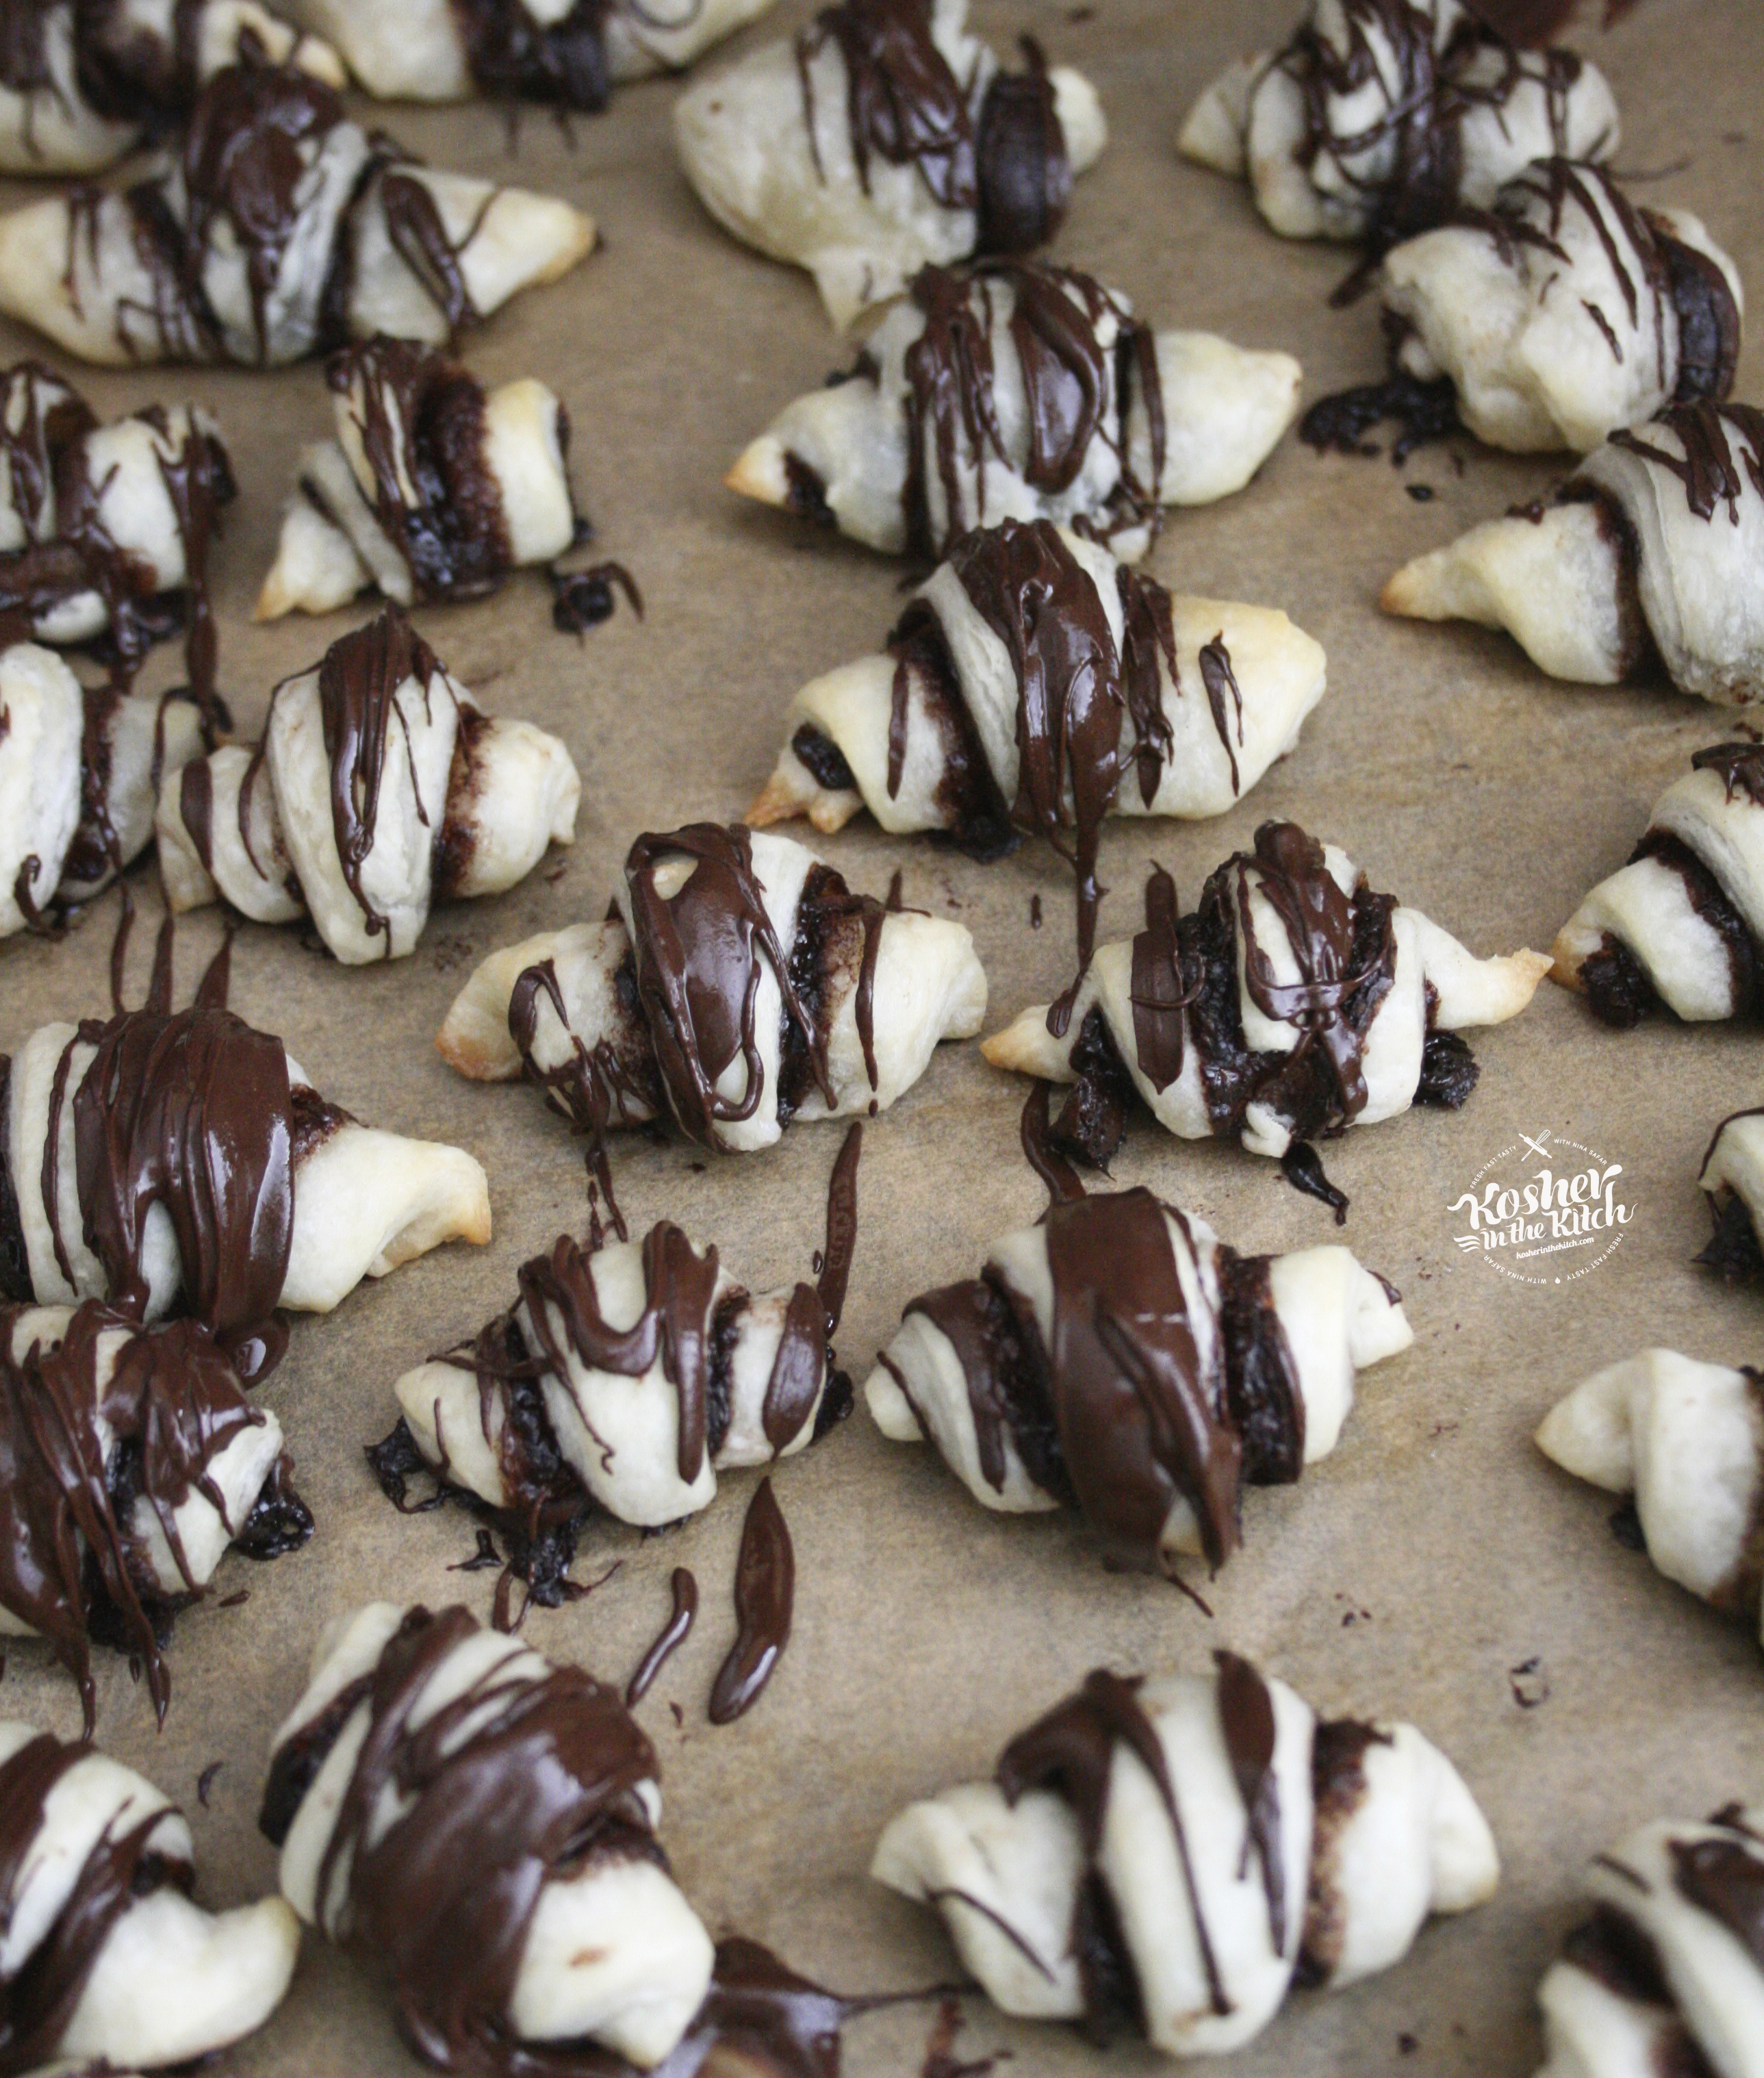 Chocolate Rugelach with Chocolate Drizzled on Top